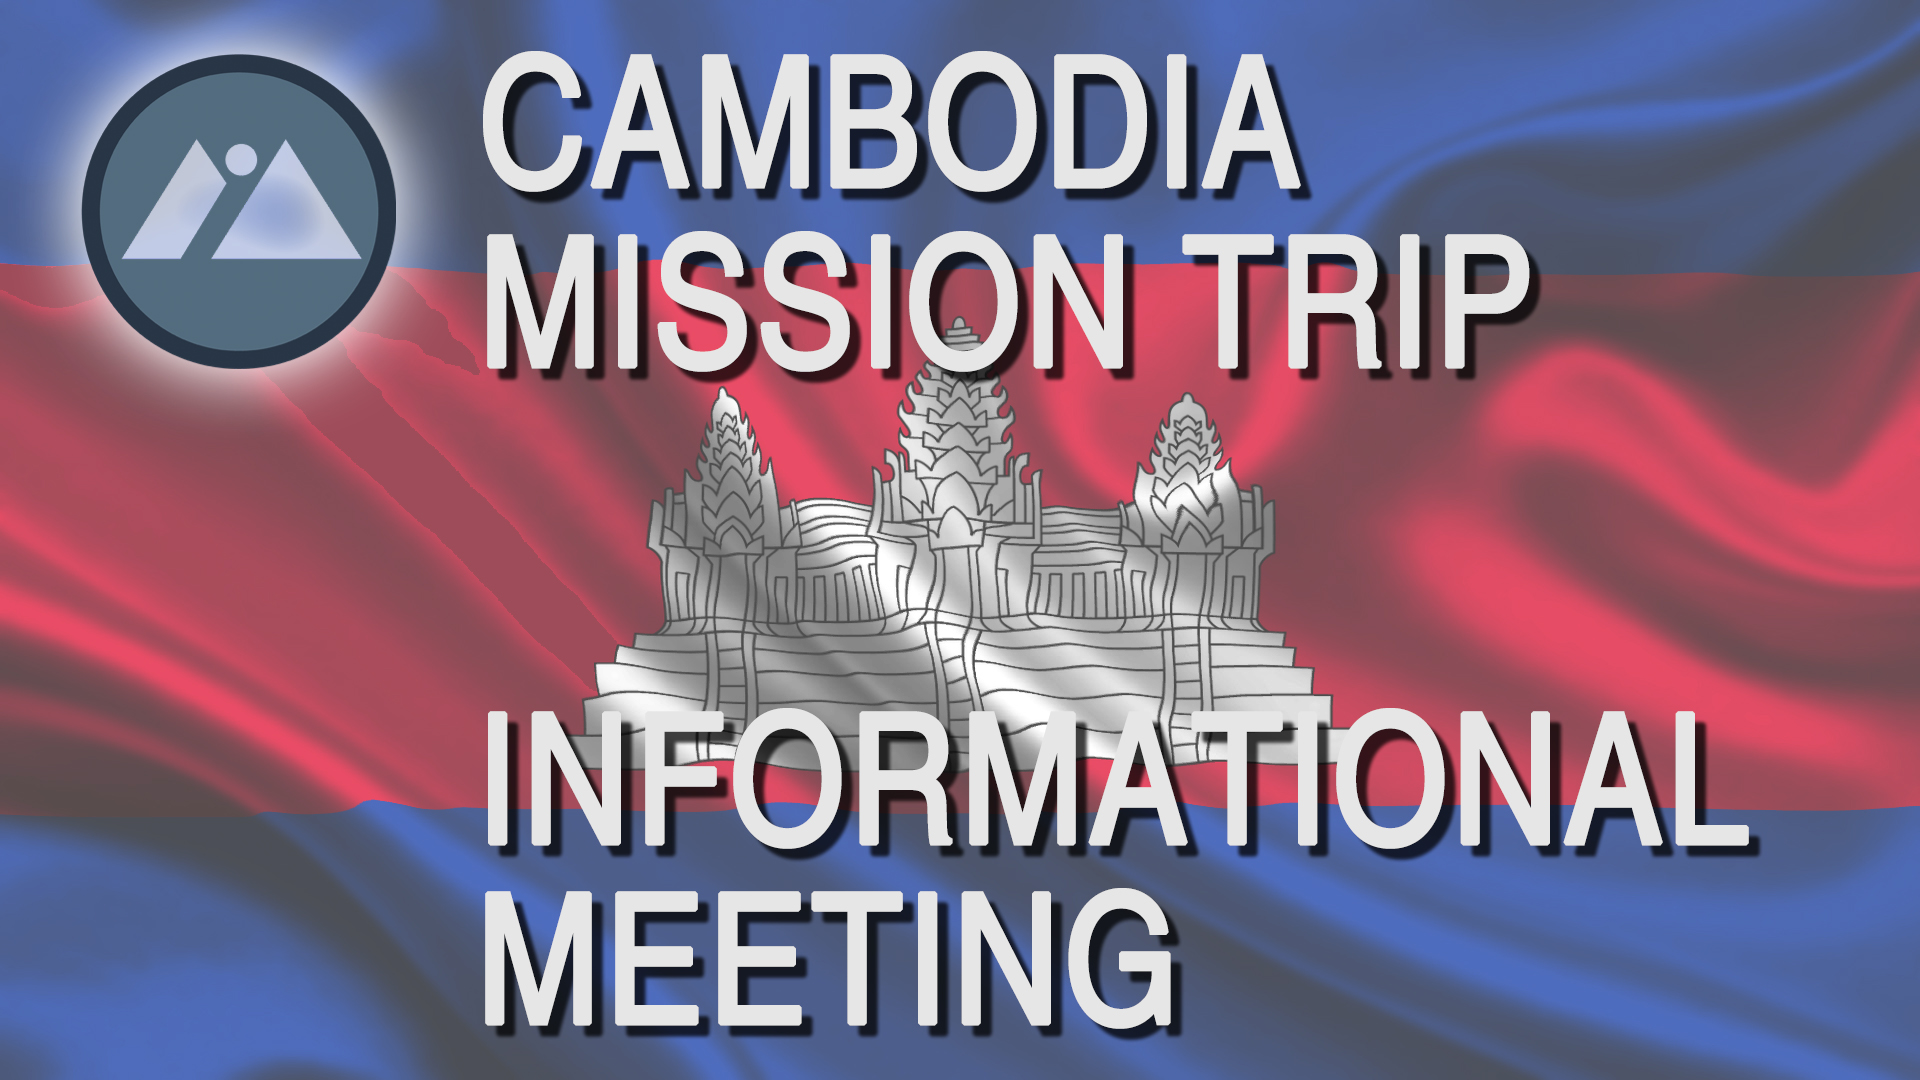 Cambodia_Mission_Trip_Info_Meeting.jpg